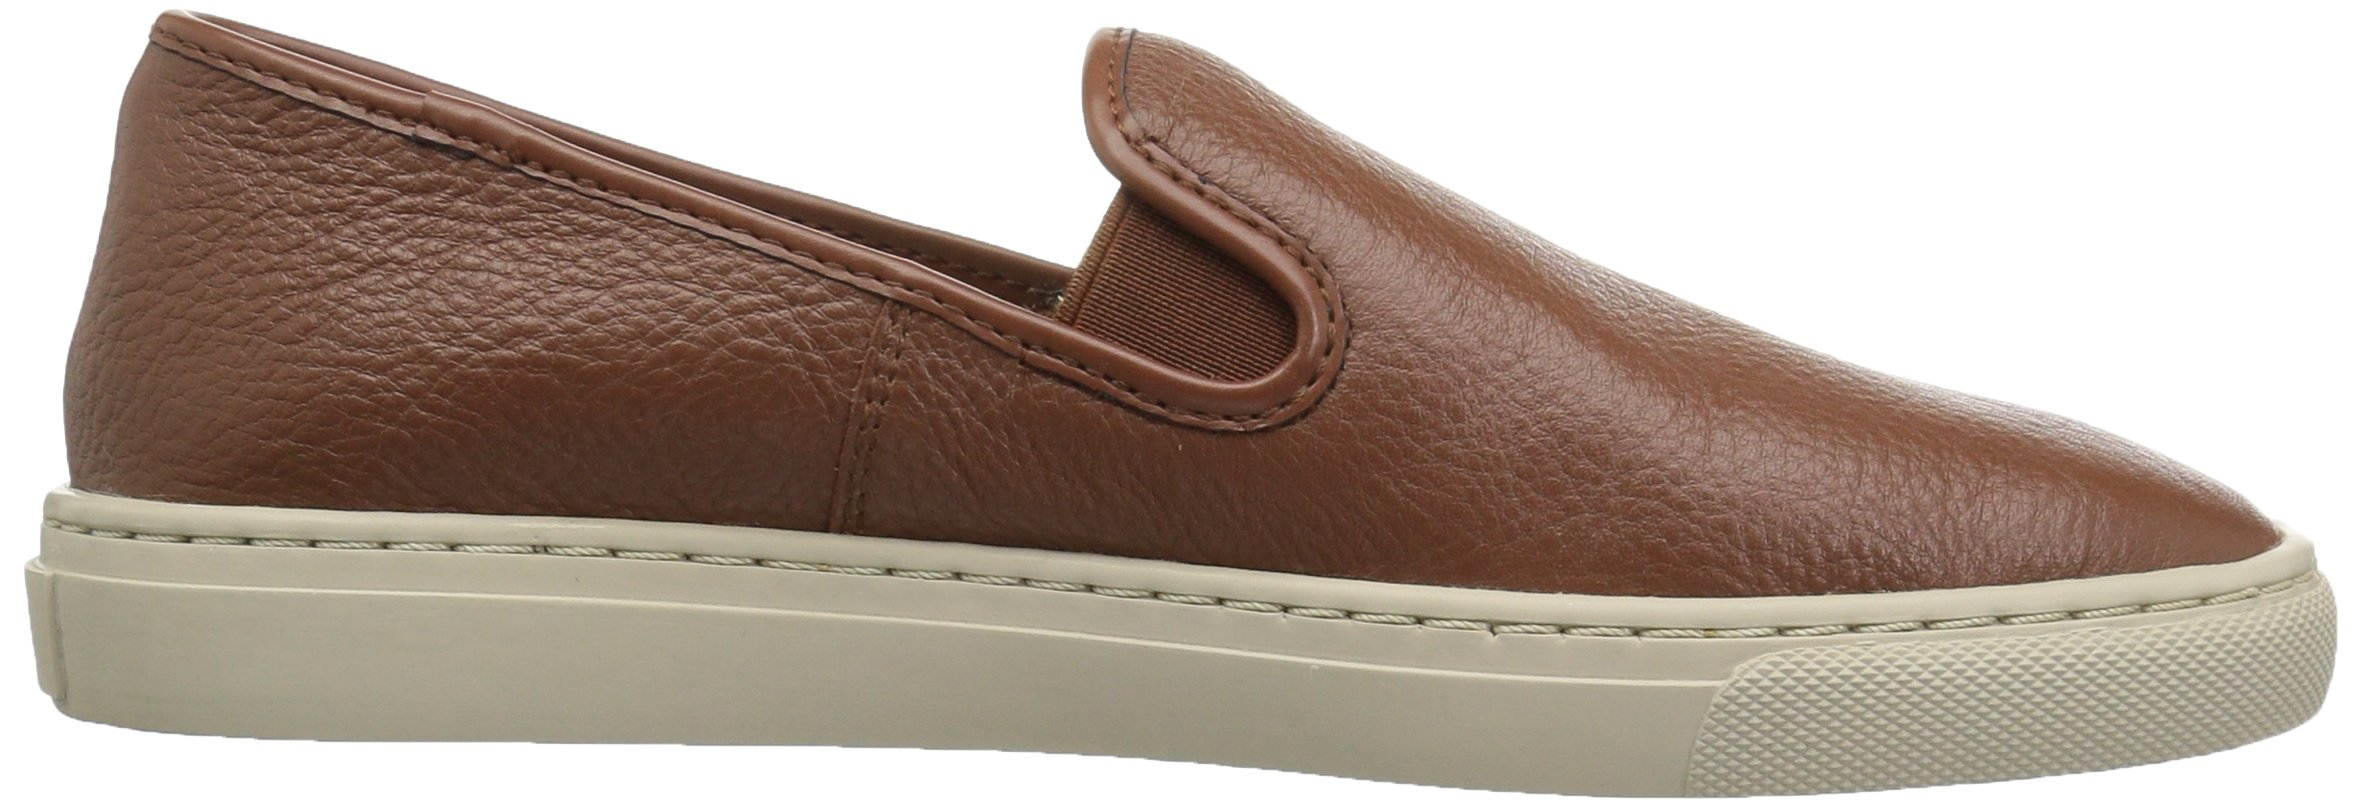 206 Collective Women's Cooper Perforated Slip-on Fashion Sneaker, Cognac Leather, 8.5 B US by 206 Collective (Image #6)